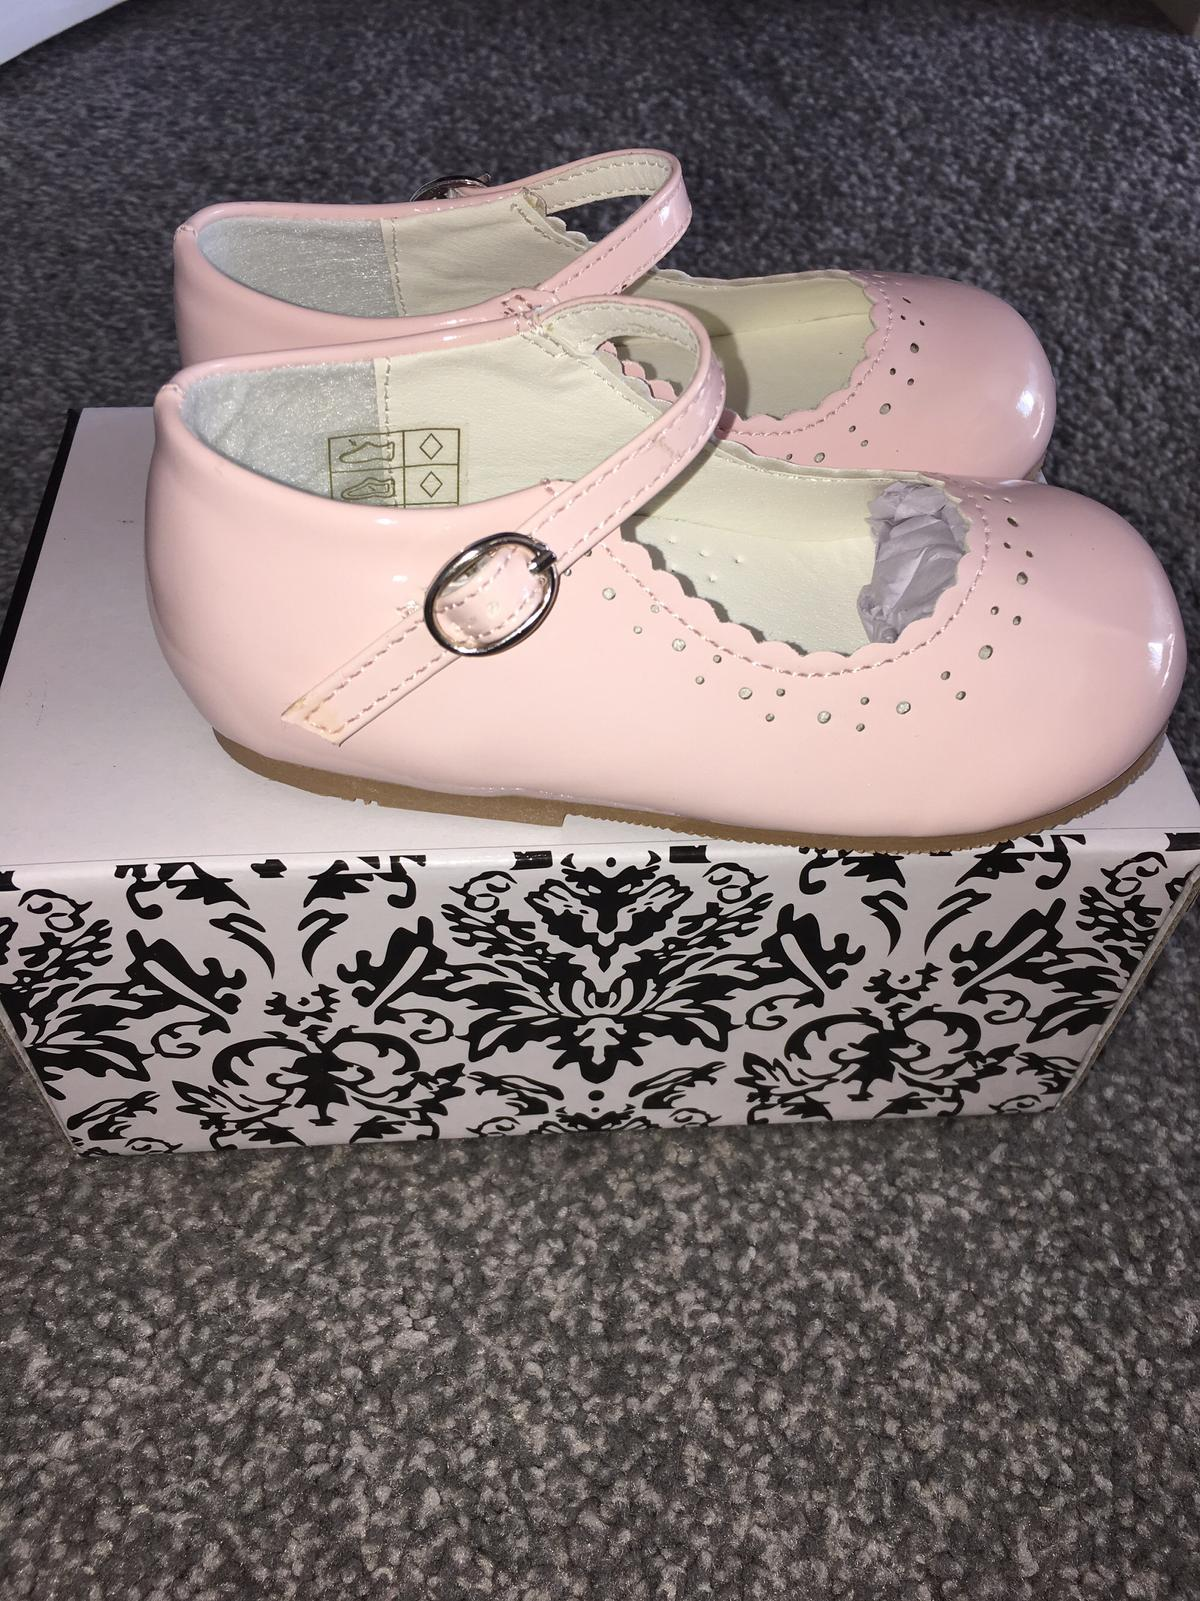 545ca9d79 Sevva Spanish shoe pink size 7 and 8 in L36 Liverpool for £12.50 for ...